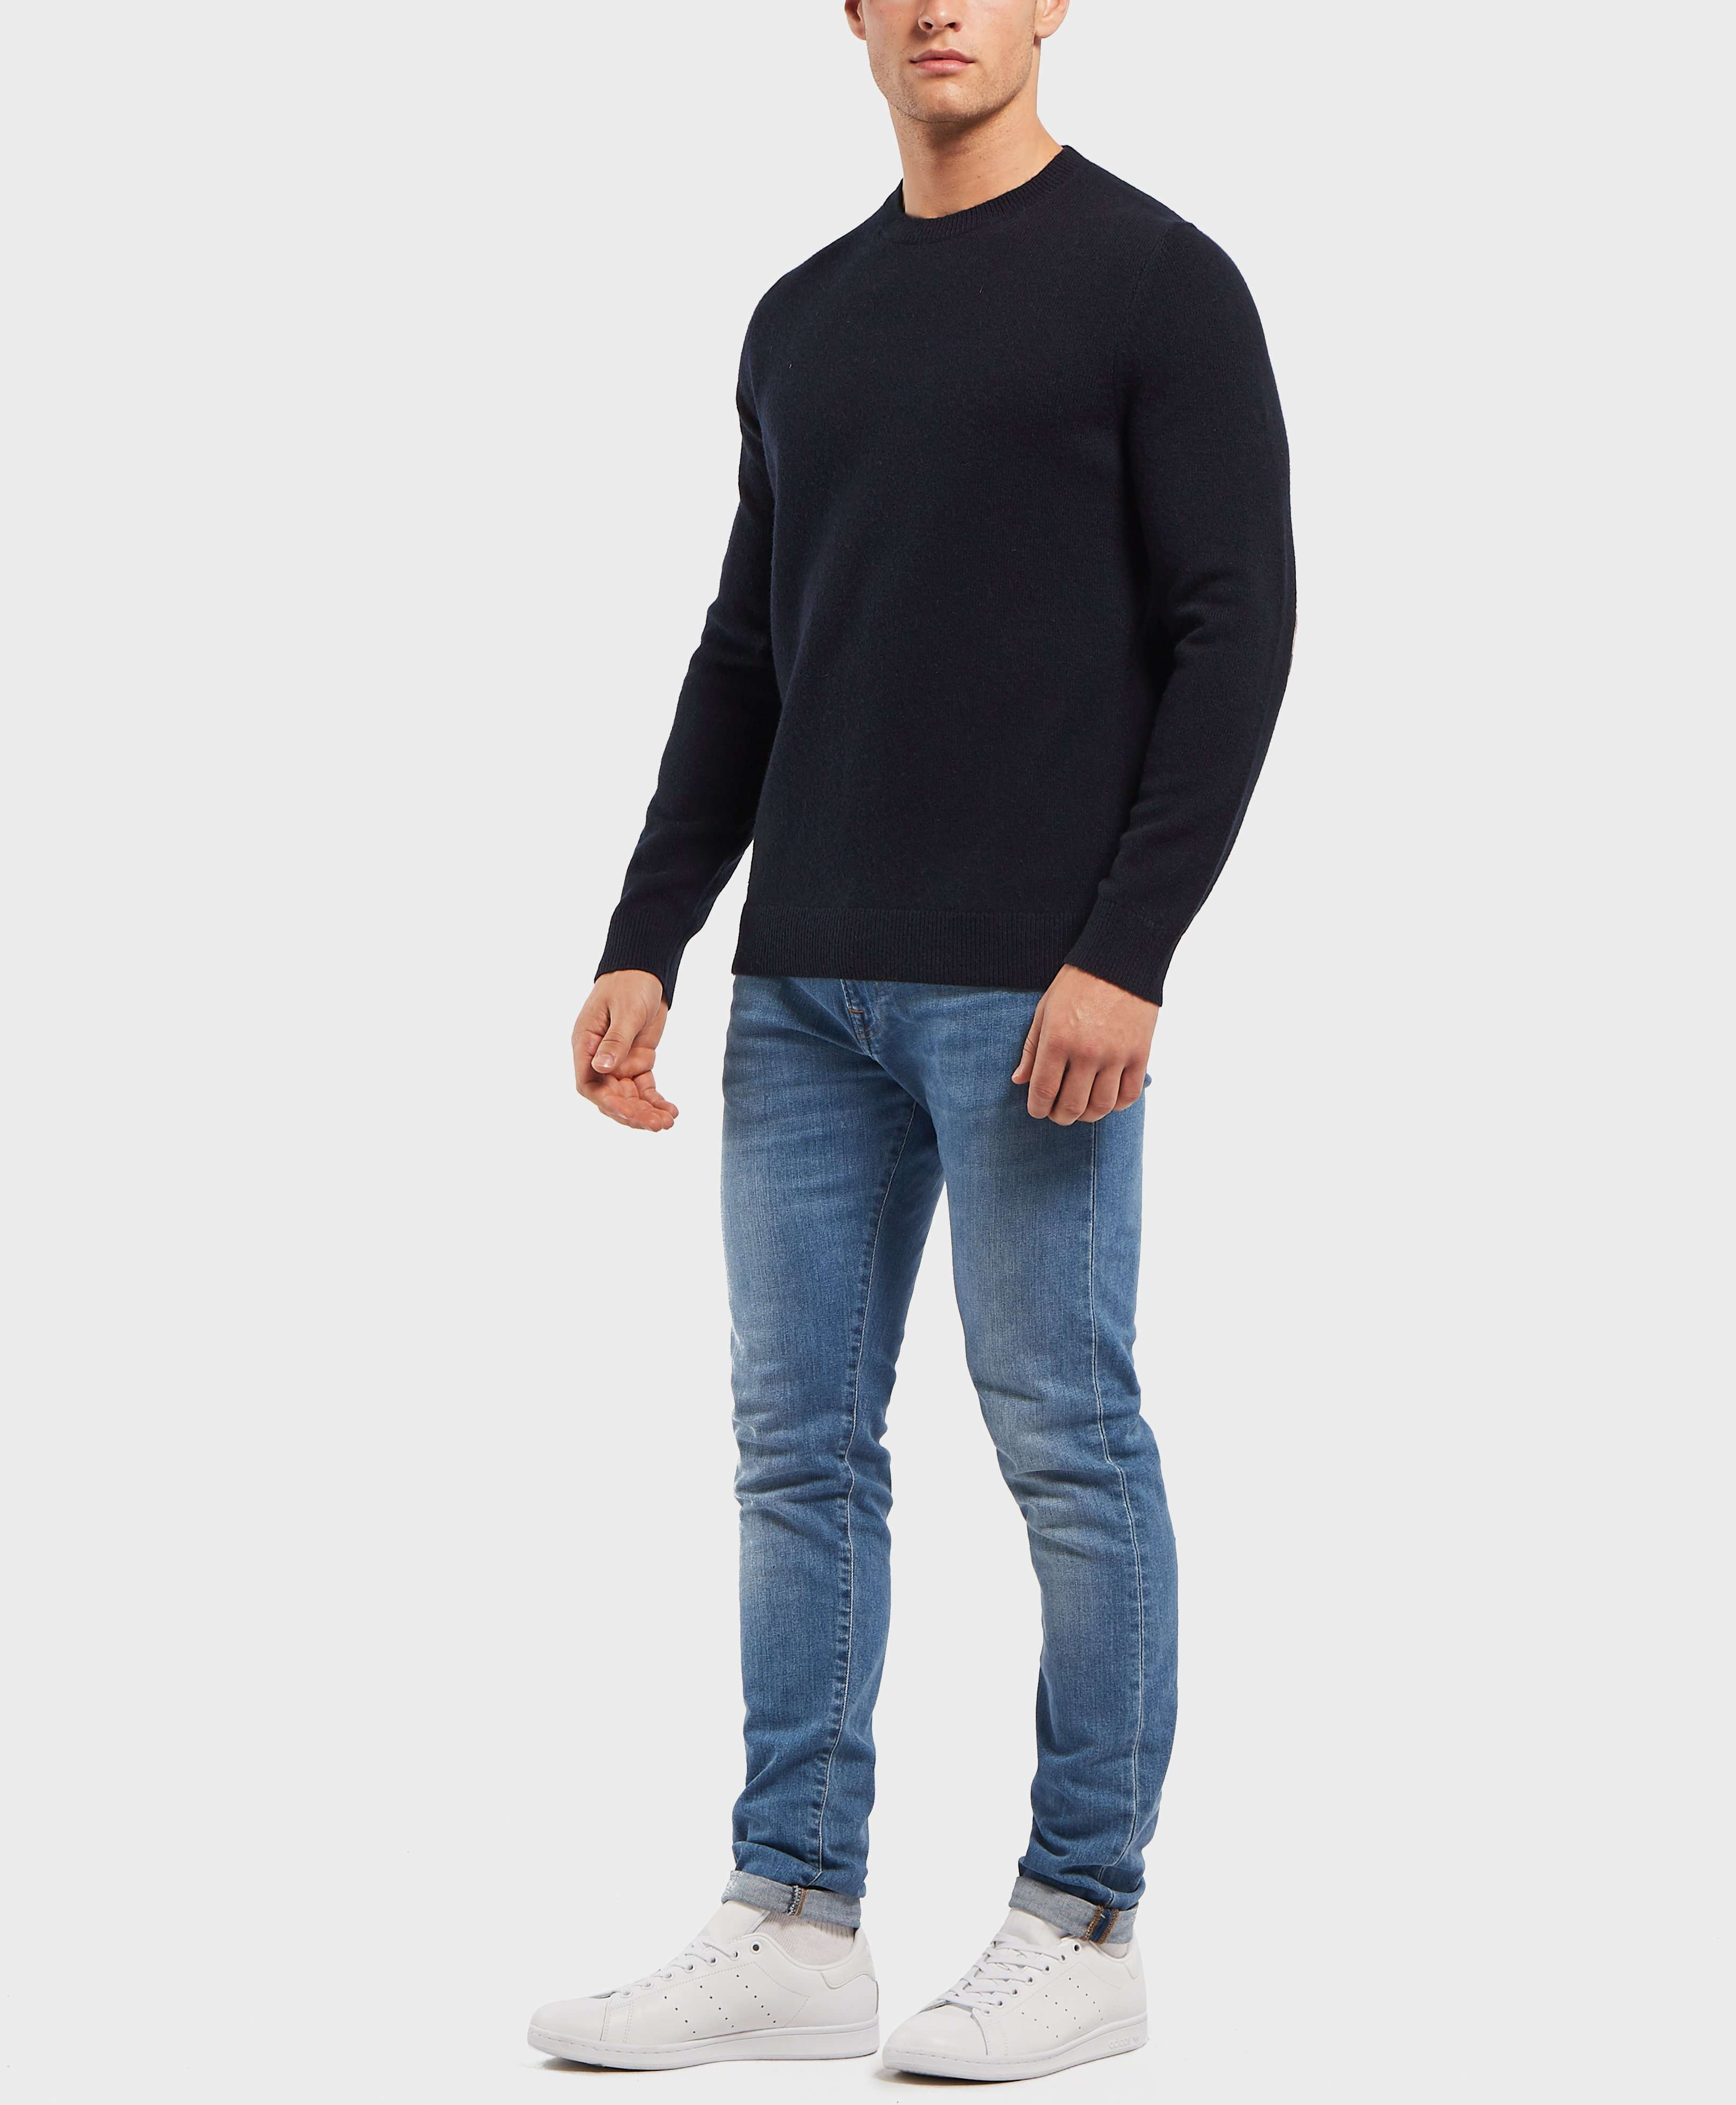 Aquascutum Elbow Patch Knitted Jumper